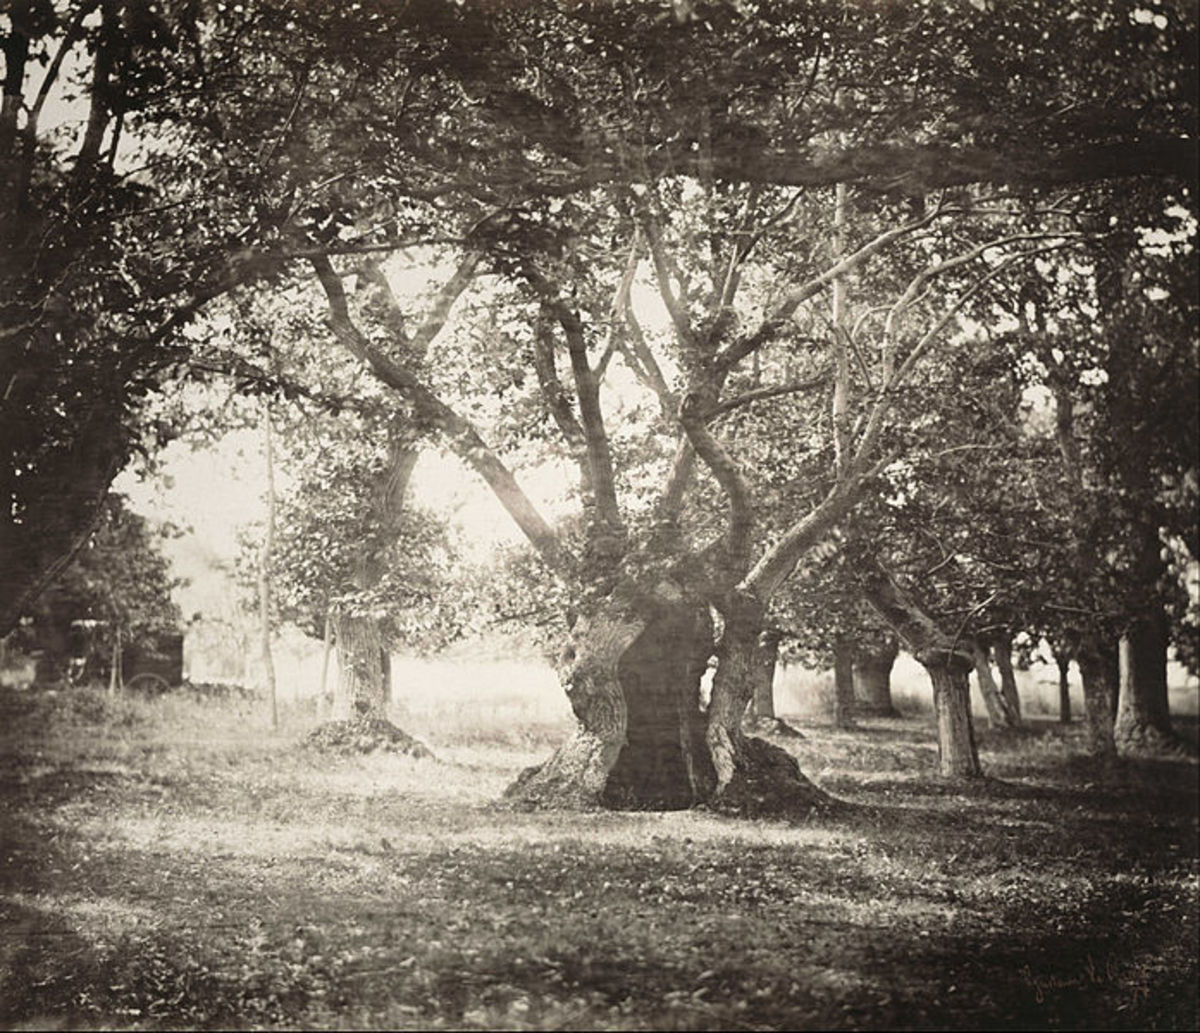 Another fascinating tree photo by Gustave Le Gray.  Taken in 1856.